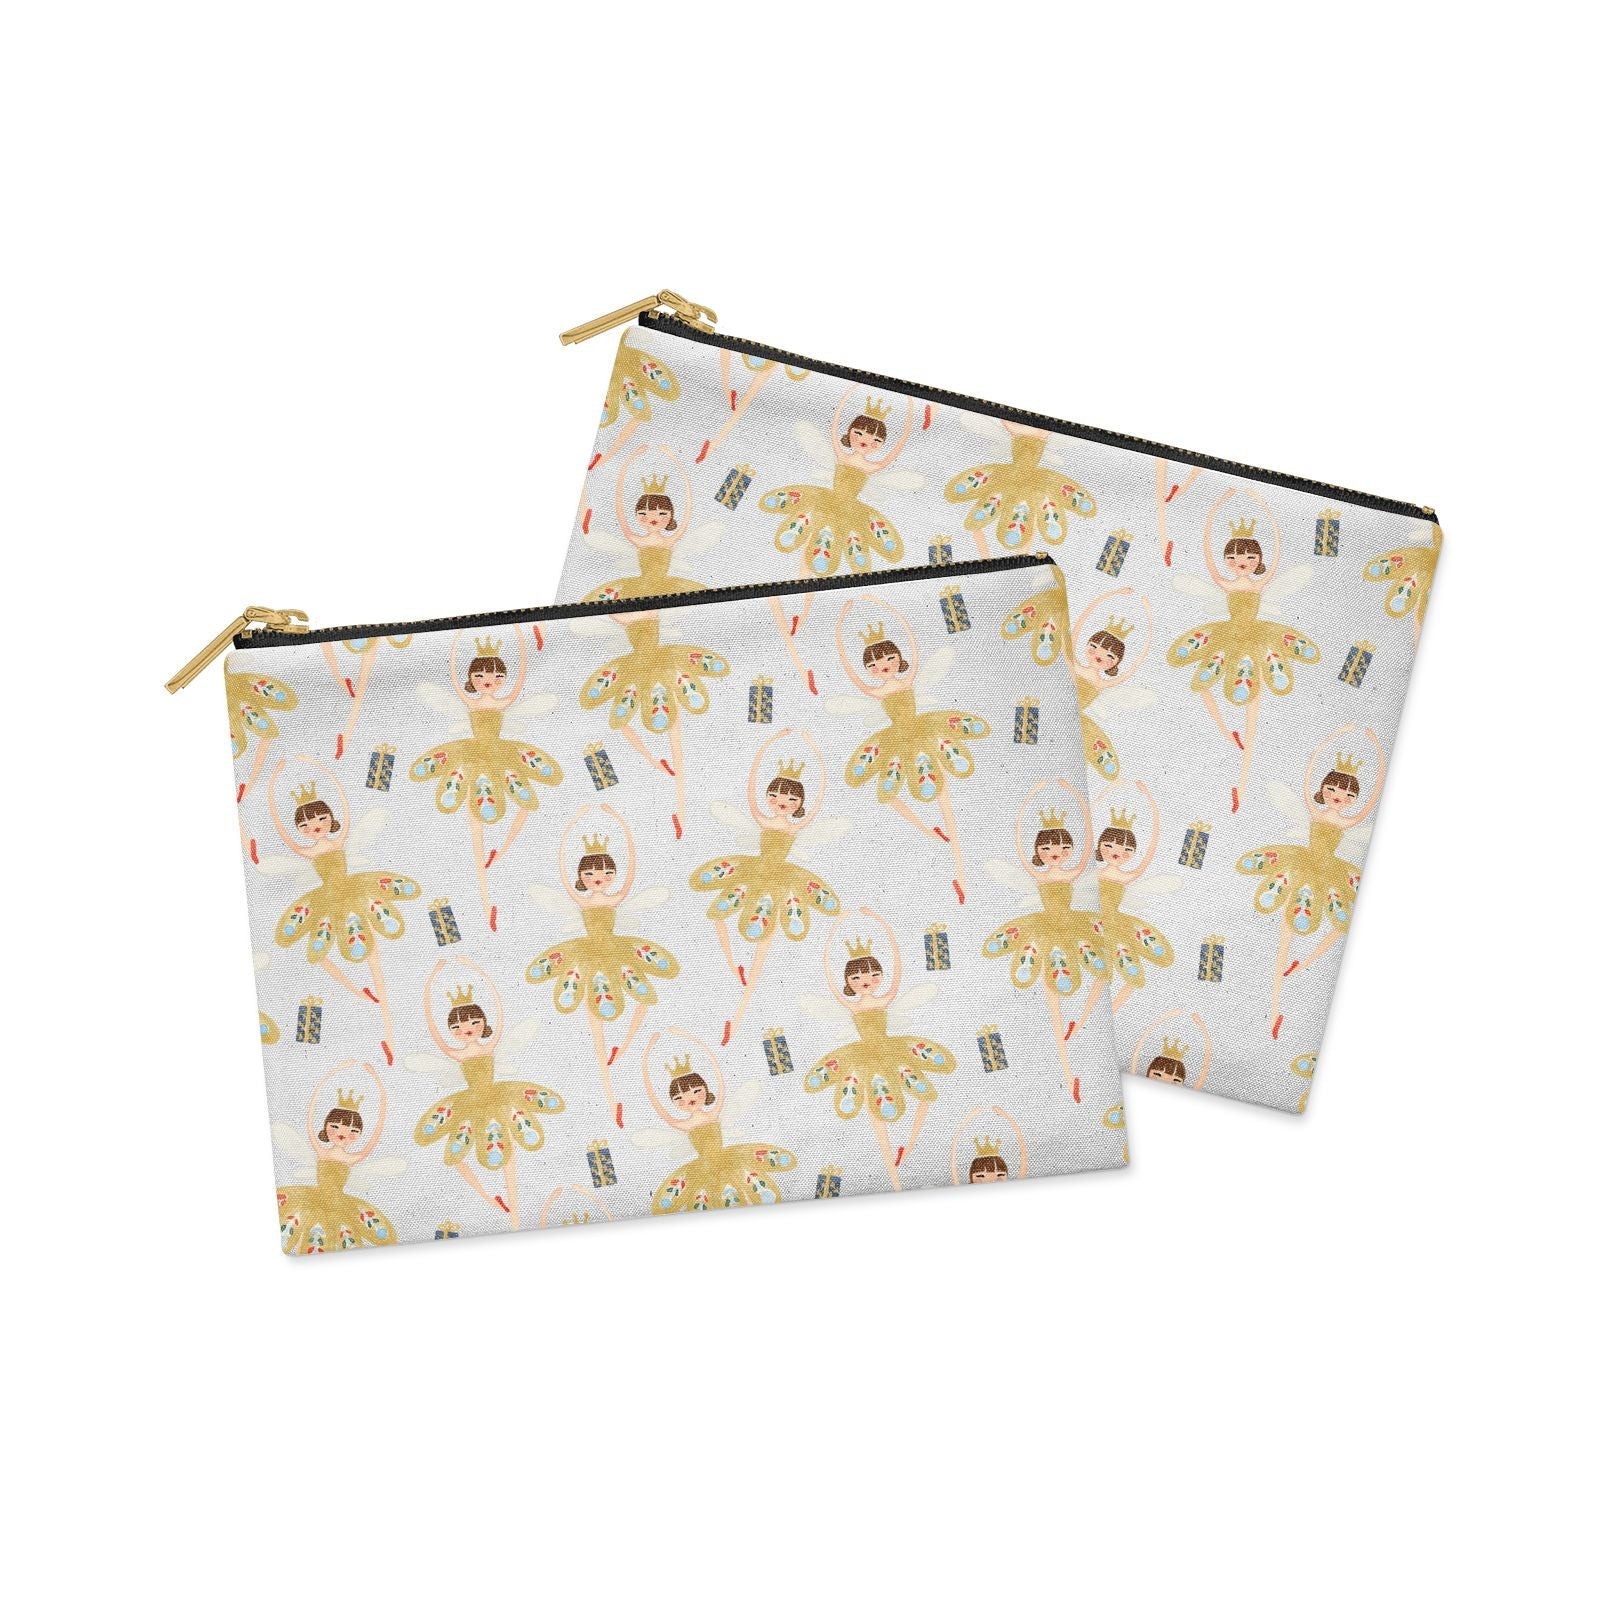 Dancing ballerina princess Clutch Bag Zipper Pouch Alternative View